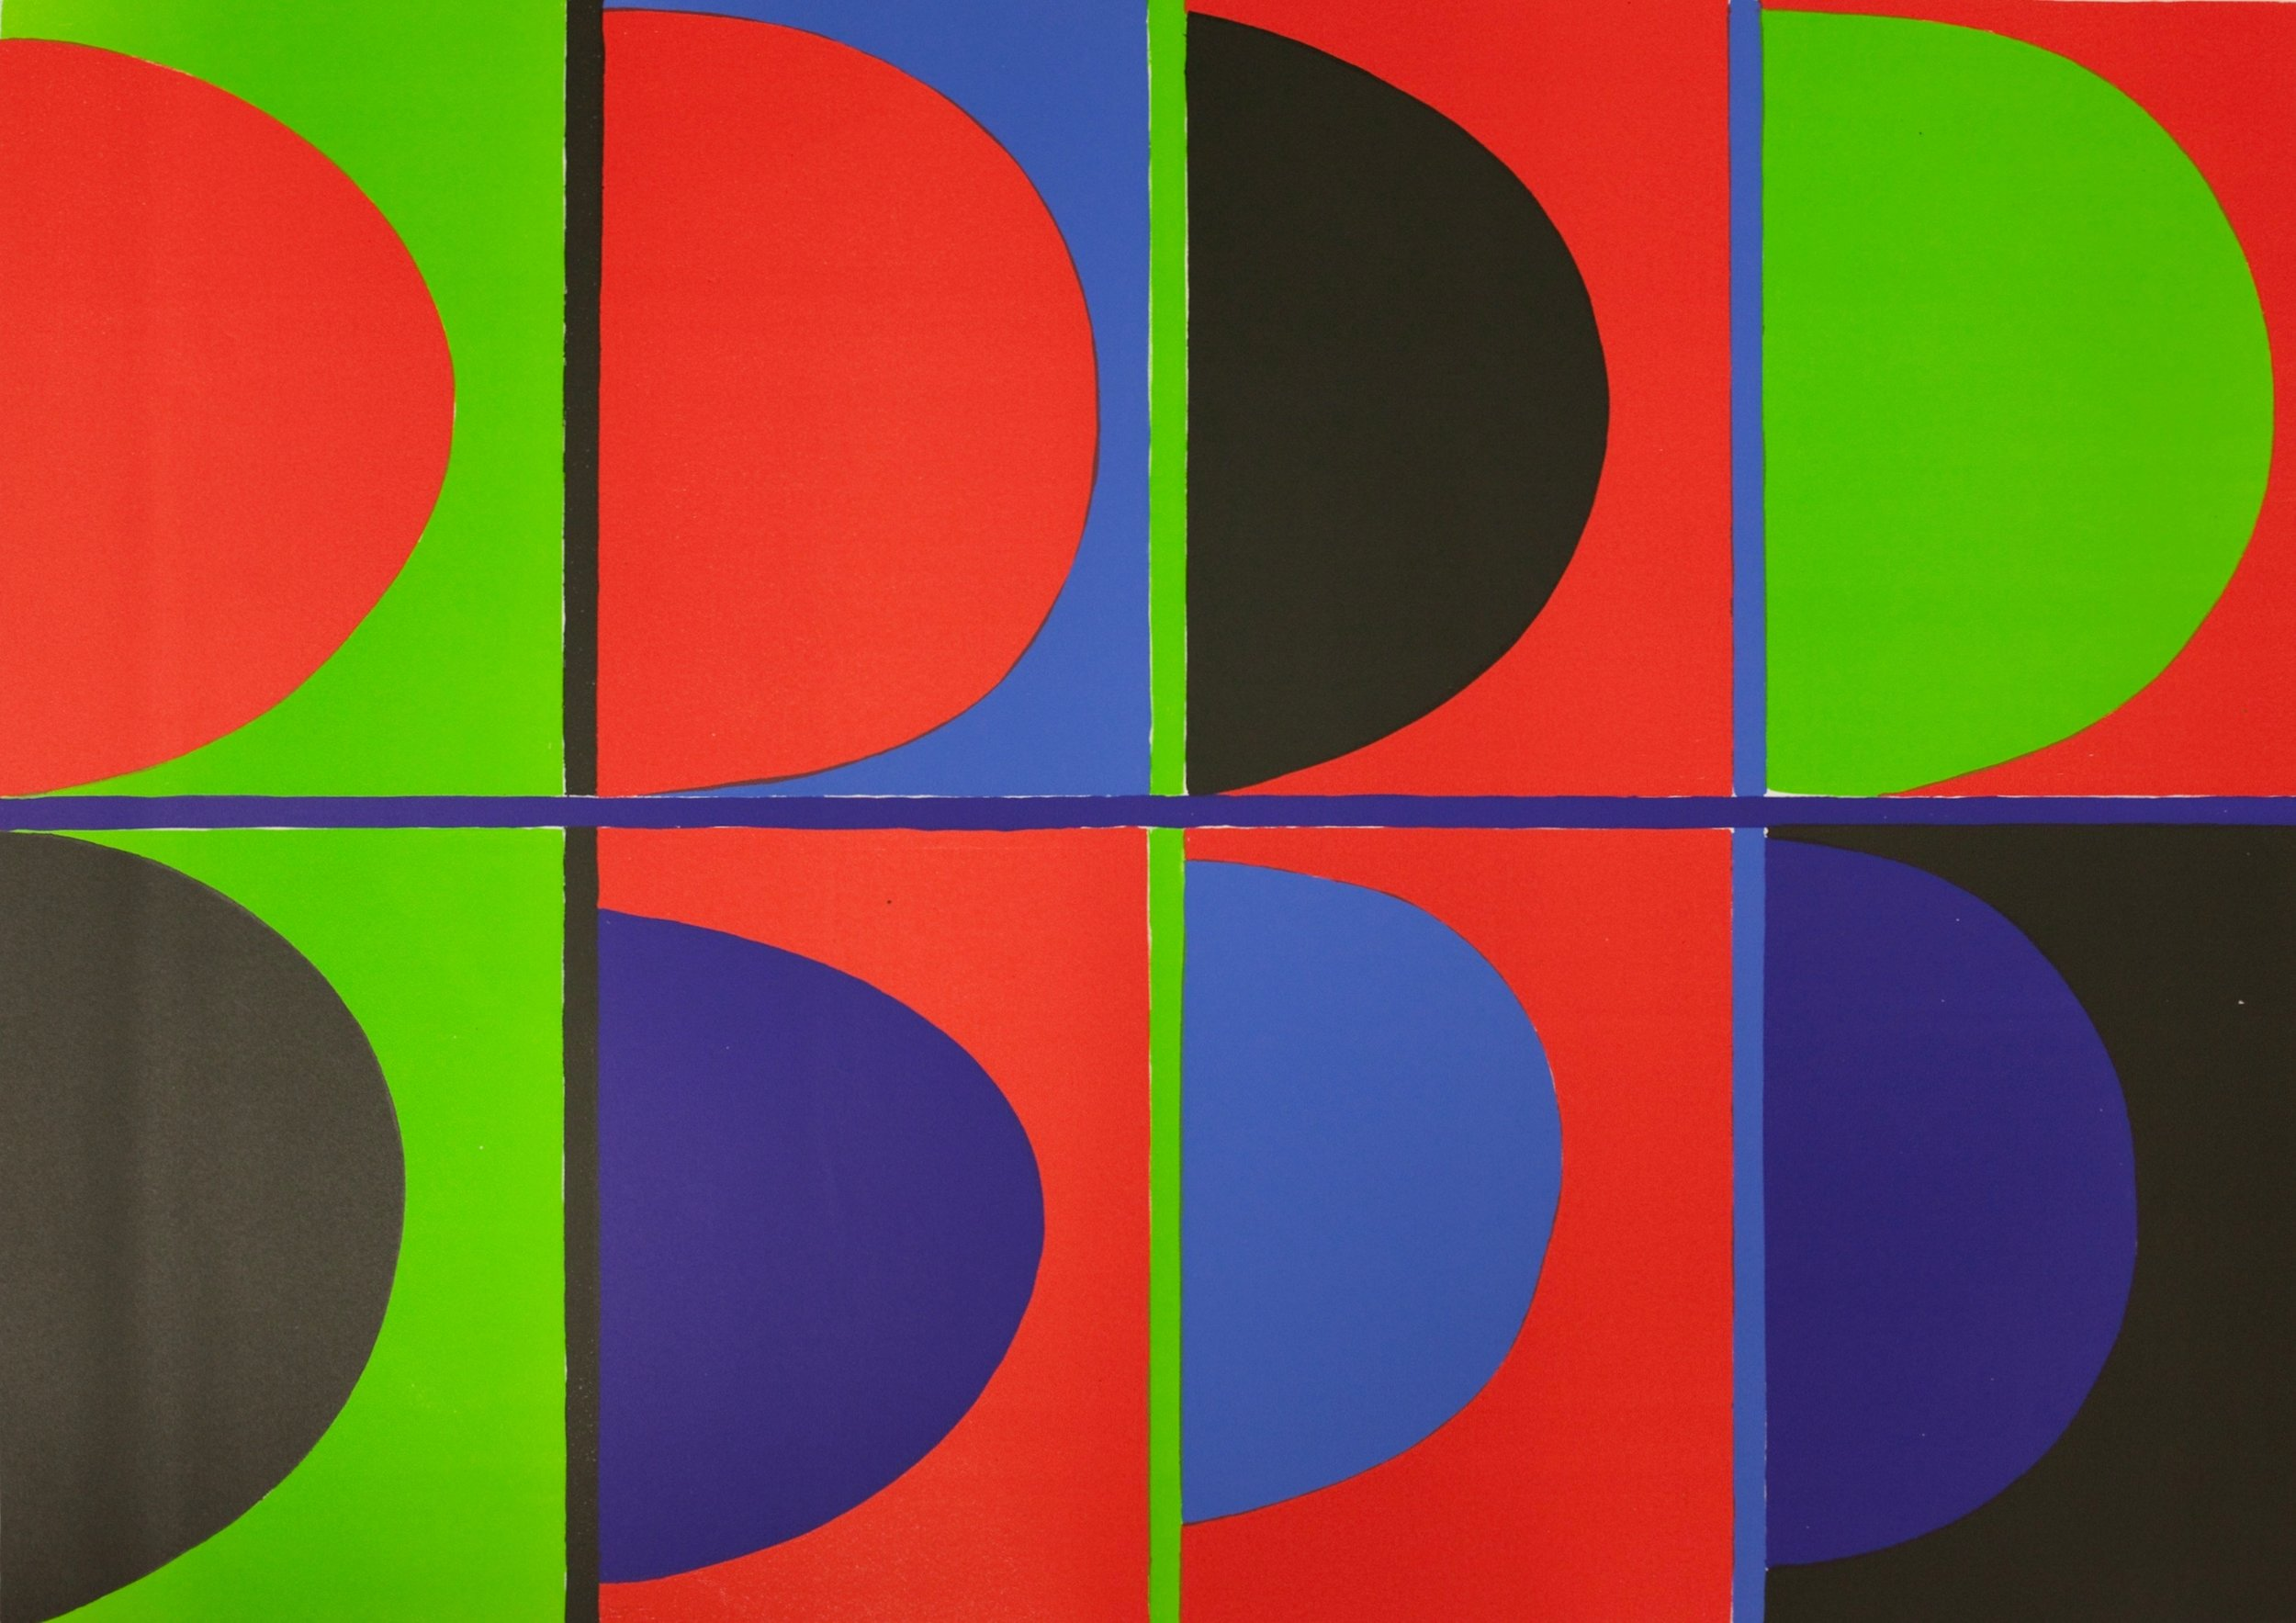 Terry Frost RA, Red, Blue, Green, 1972, courtesy Dominic Kemp Modern British Prints